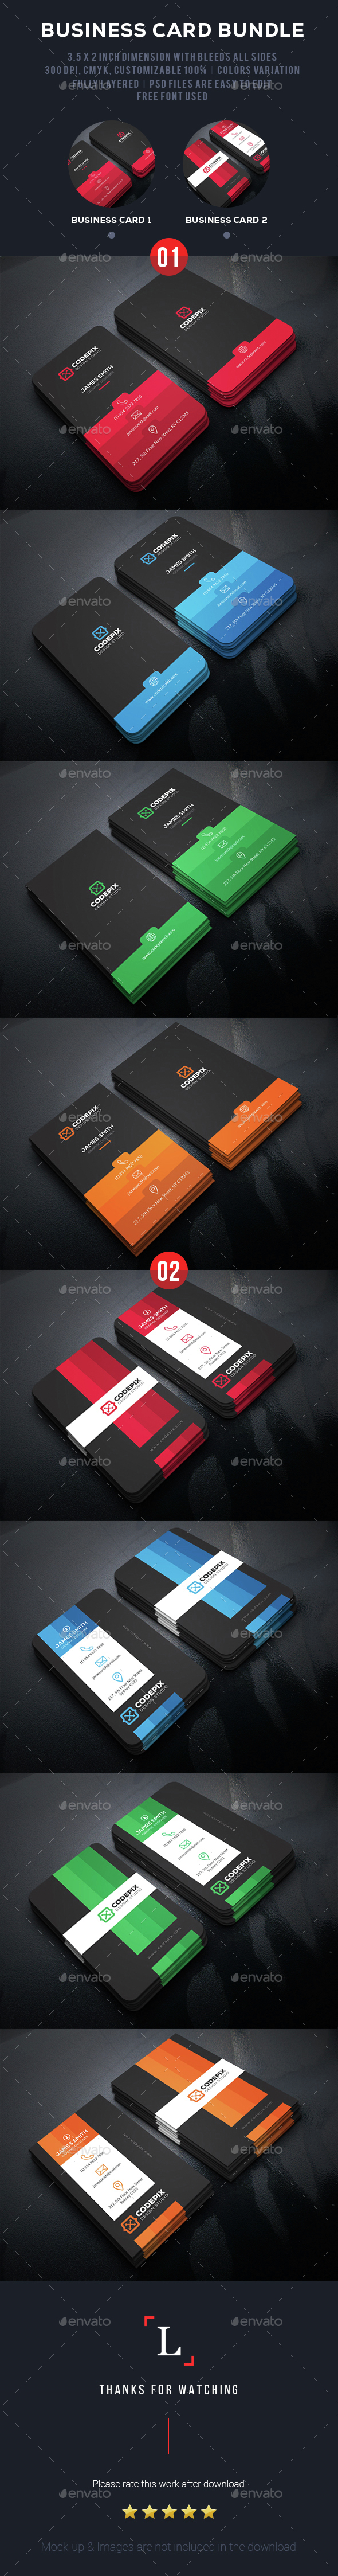 Color Shade Business Card Bundle - Business Cards Print Templates